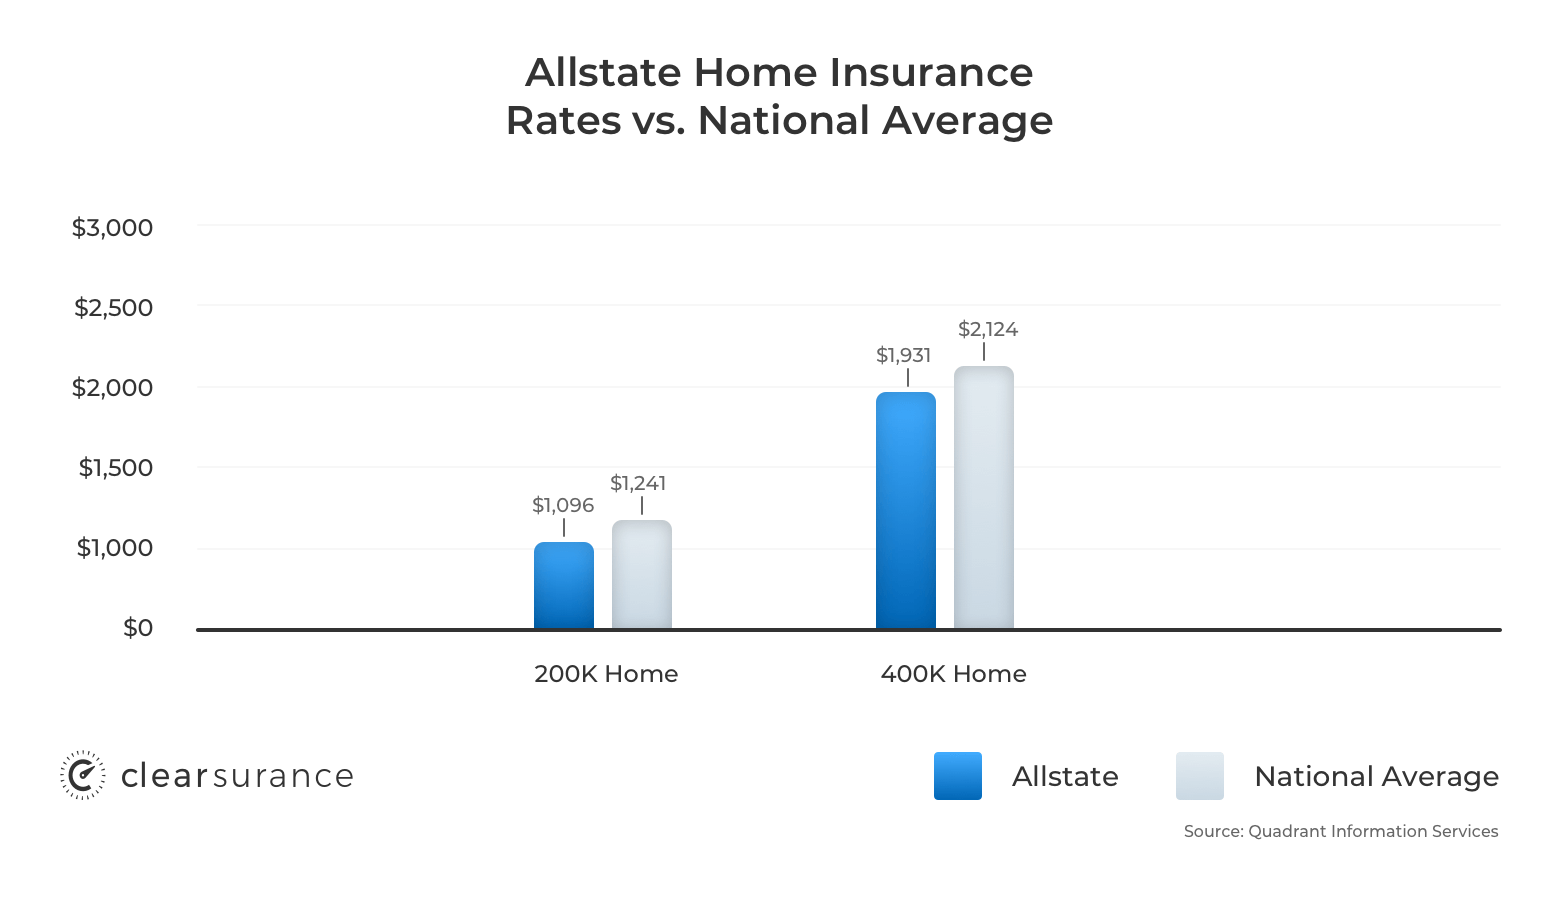 Allstate home insurance rates vs. the national average